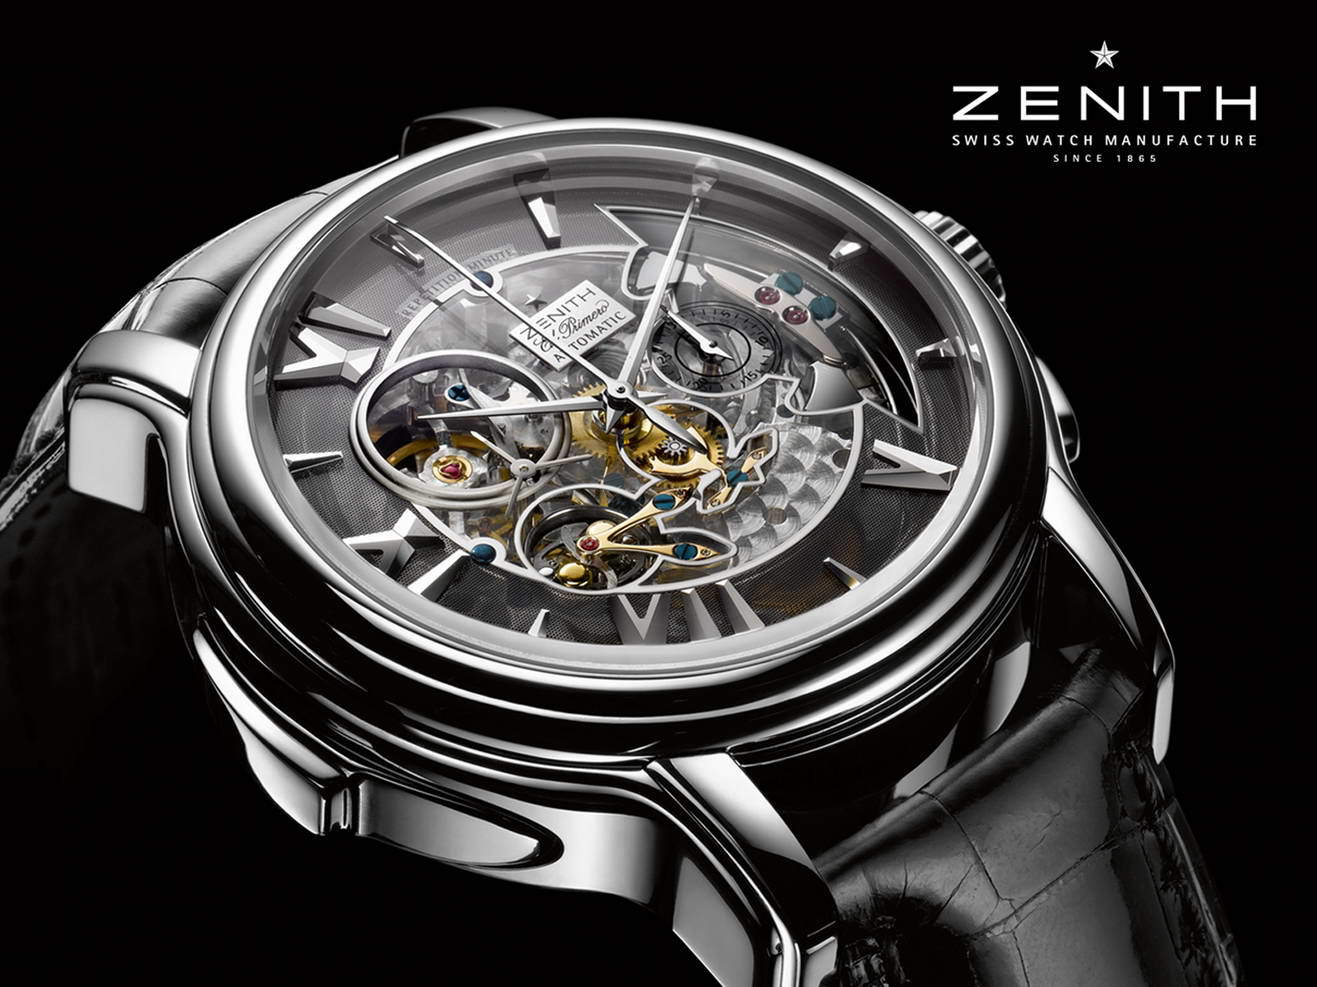 Chronograph Watches: An Experts Guide Chronograph Watches: An Experts Guide new pics